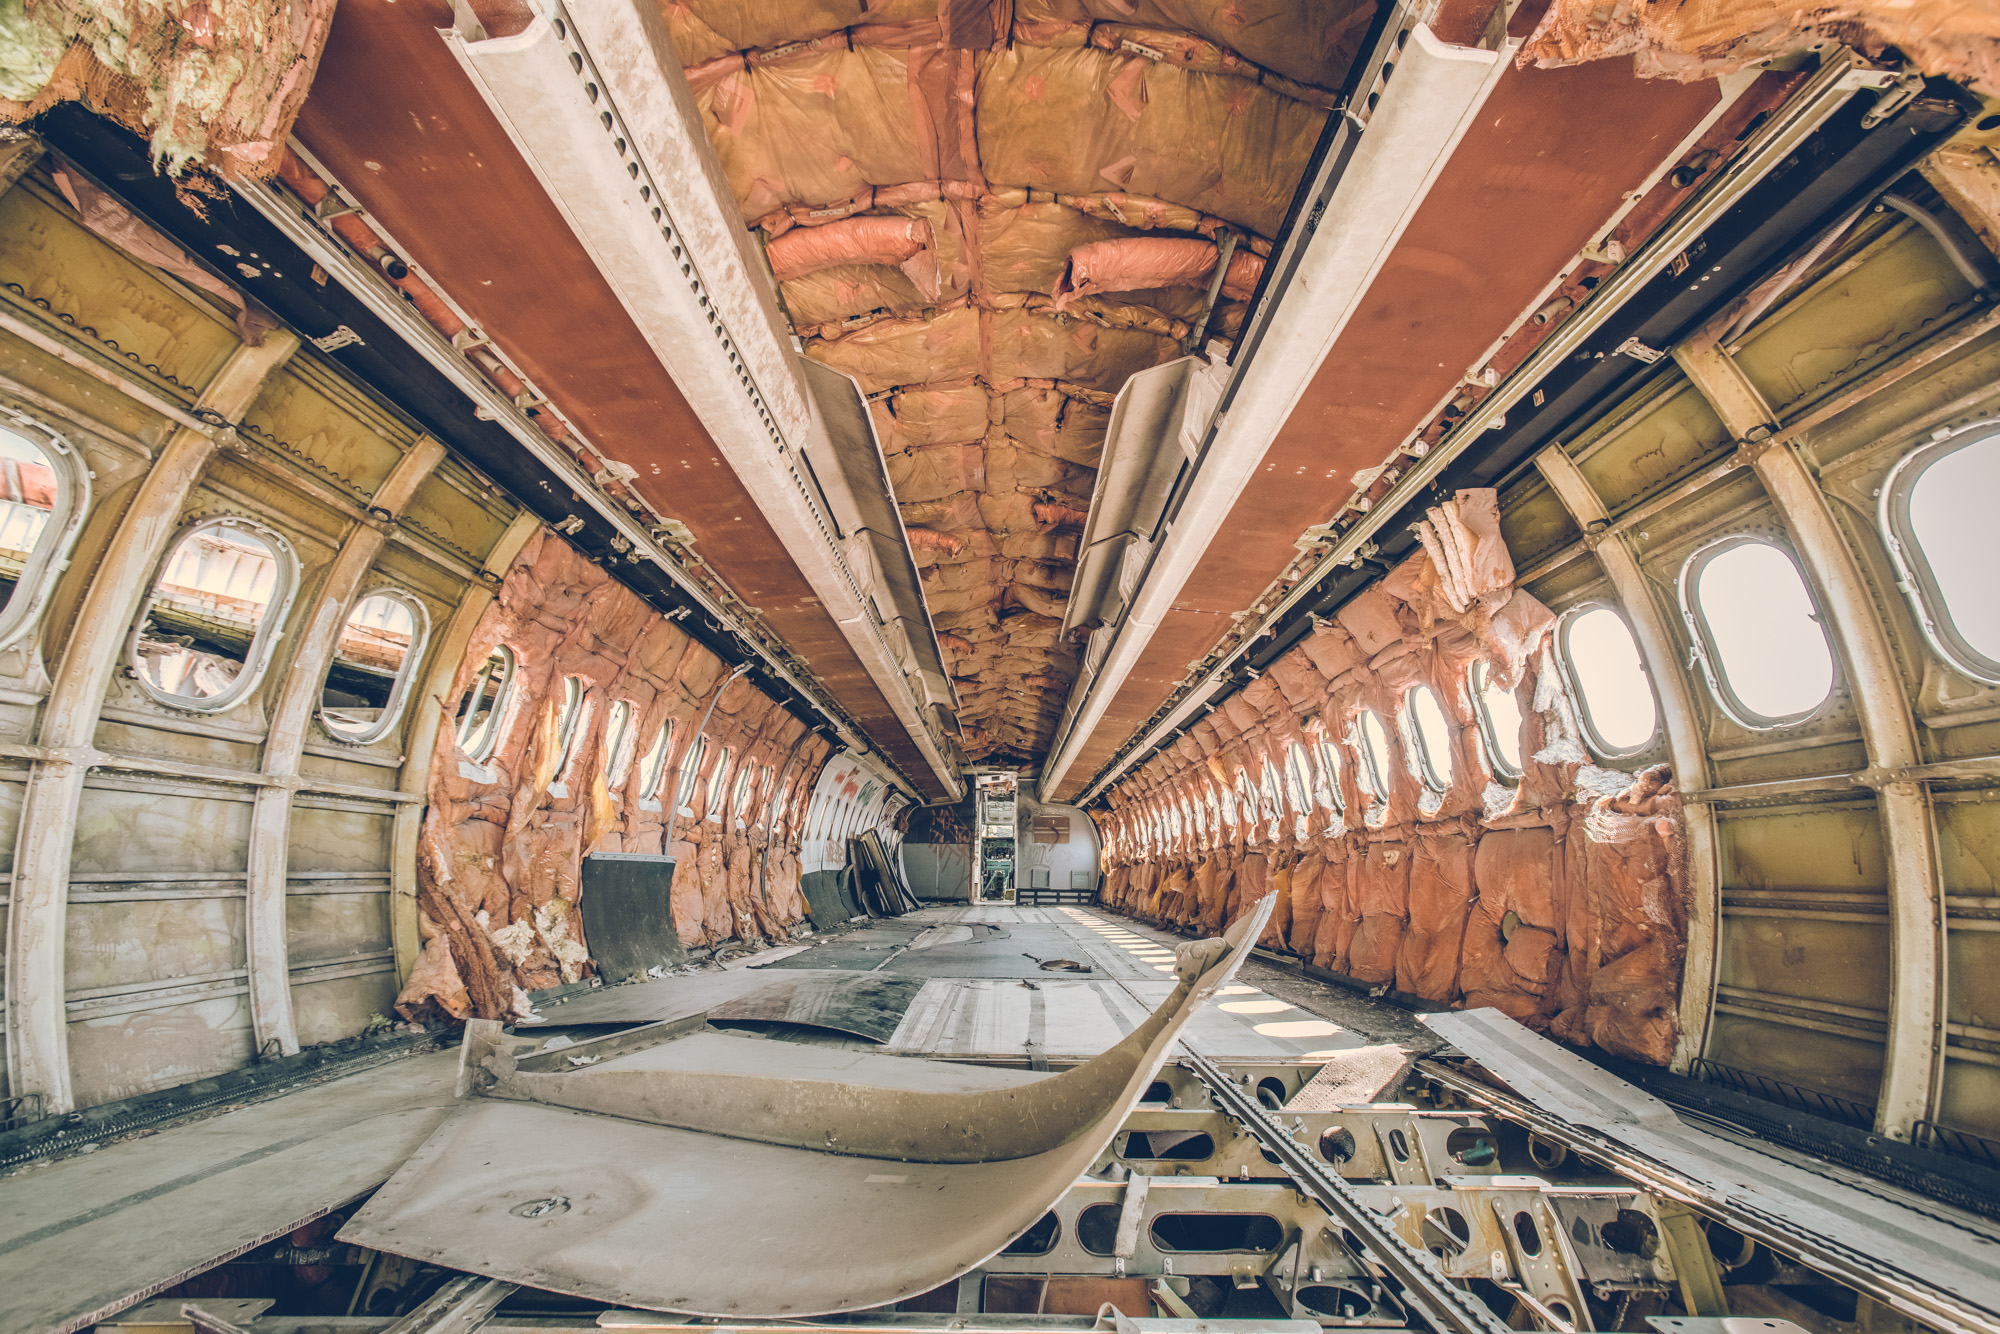 The Airplane Graveyard in Bangkok